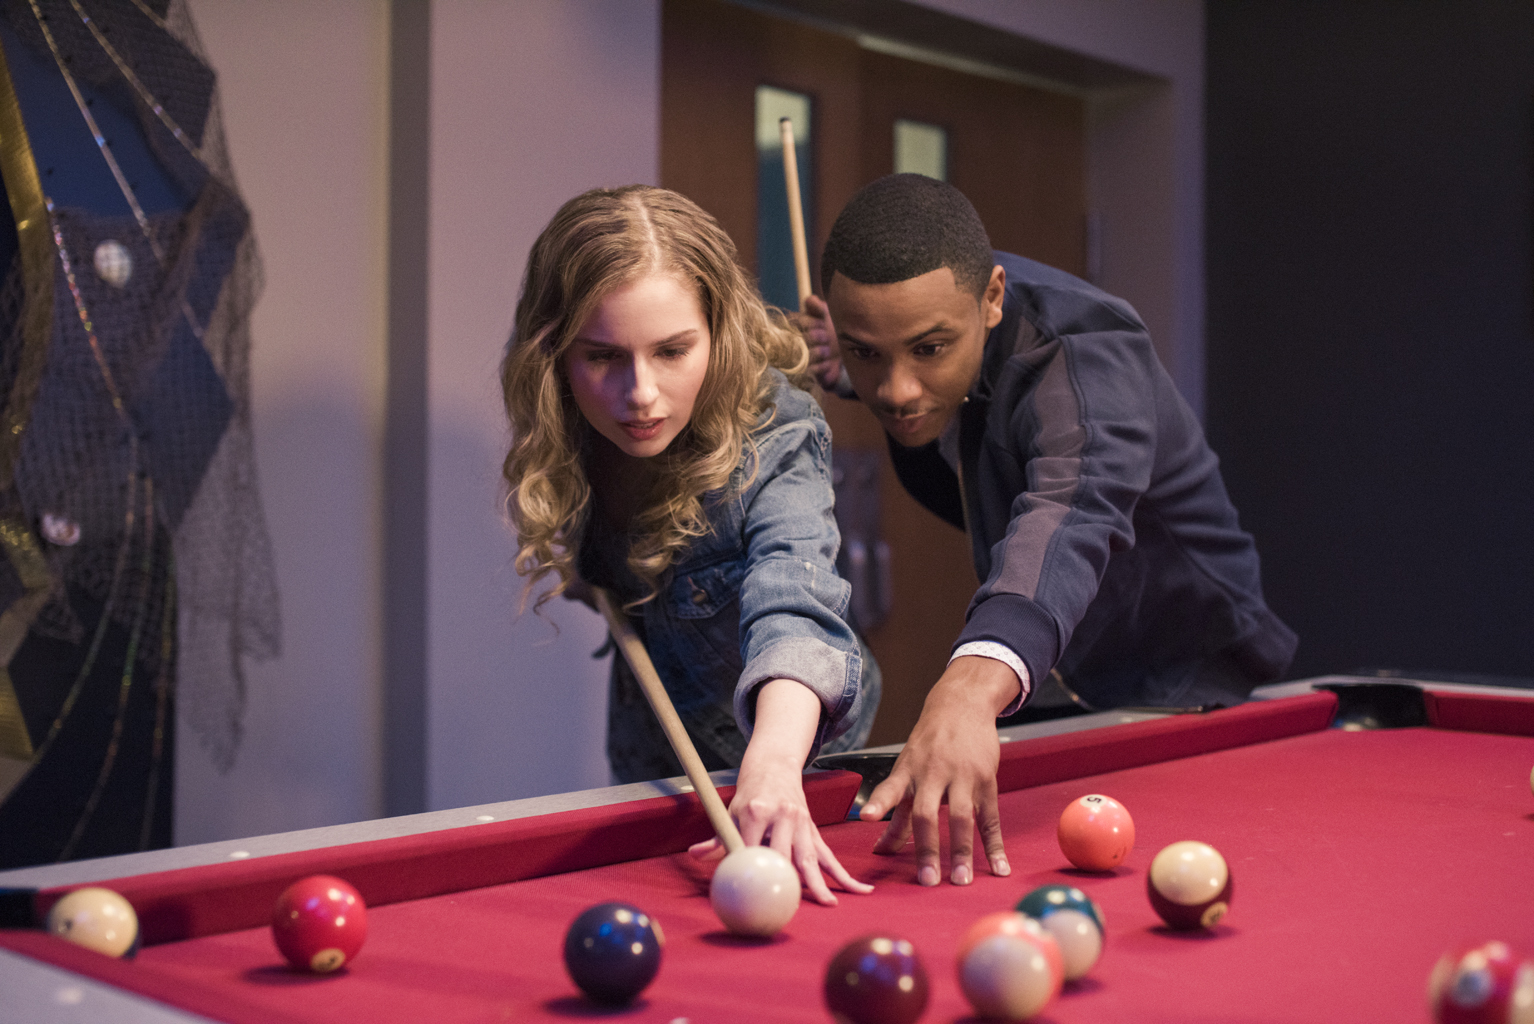 ALL NIGHT -- Karaoke - Episode 103 - As karaoke commences, Roni makes a huge announcement only to be topped by the revelation of an even bigger secret. Bryce begins to lay the groundwork for his seduction of the gym teacherís wife. Christian urges Melinda to come out of her shell. Christian Christian (Tequan Richmond), Melinda Weems (Allie Grant) shown. Photo by: Jake Thomas/Hulu)